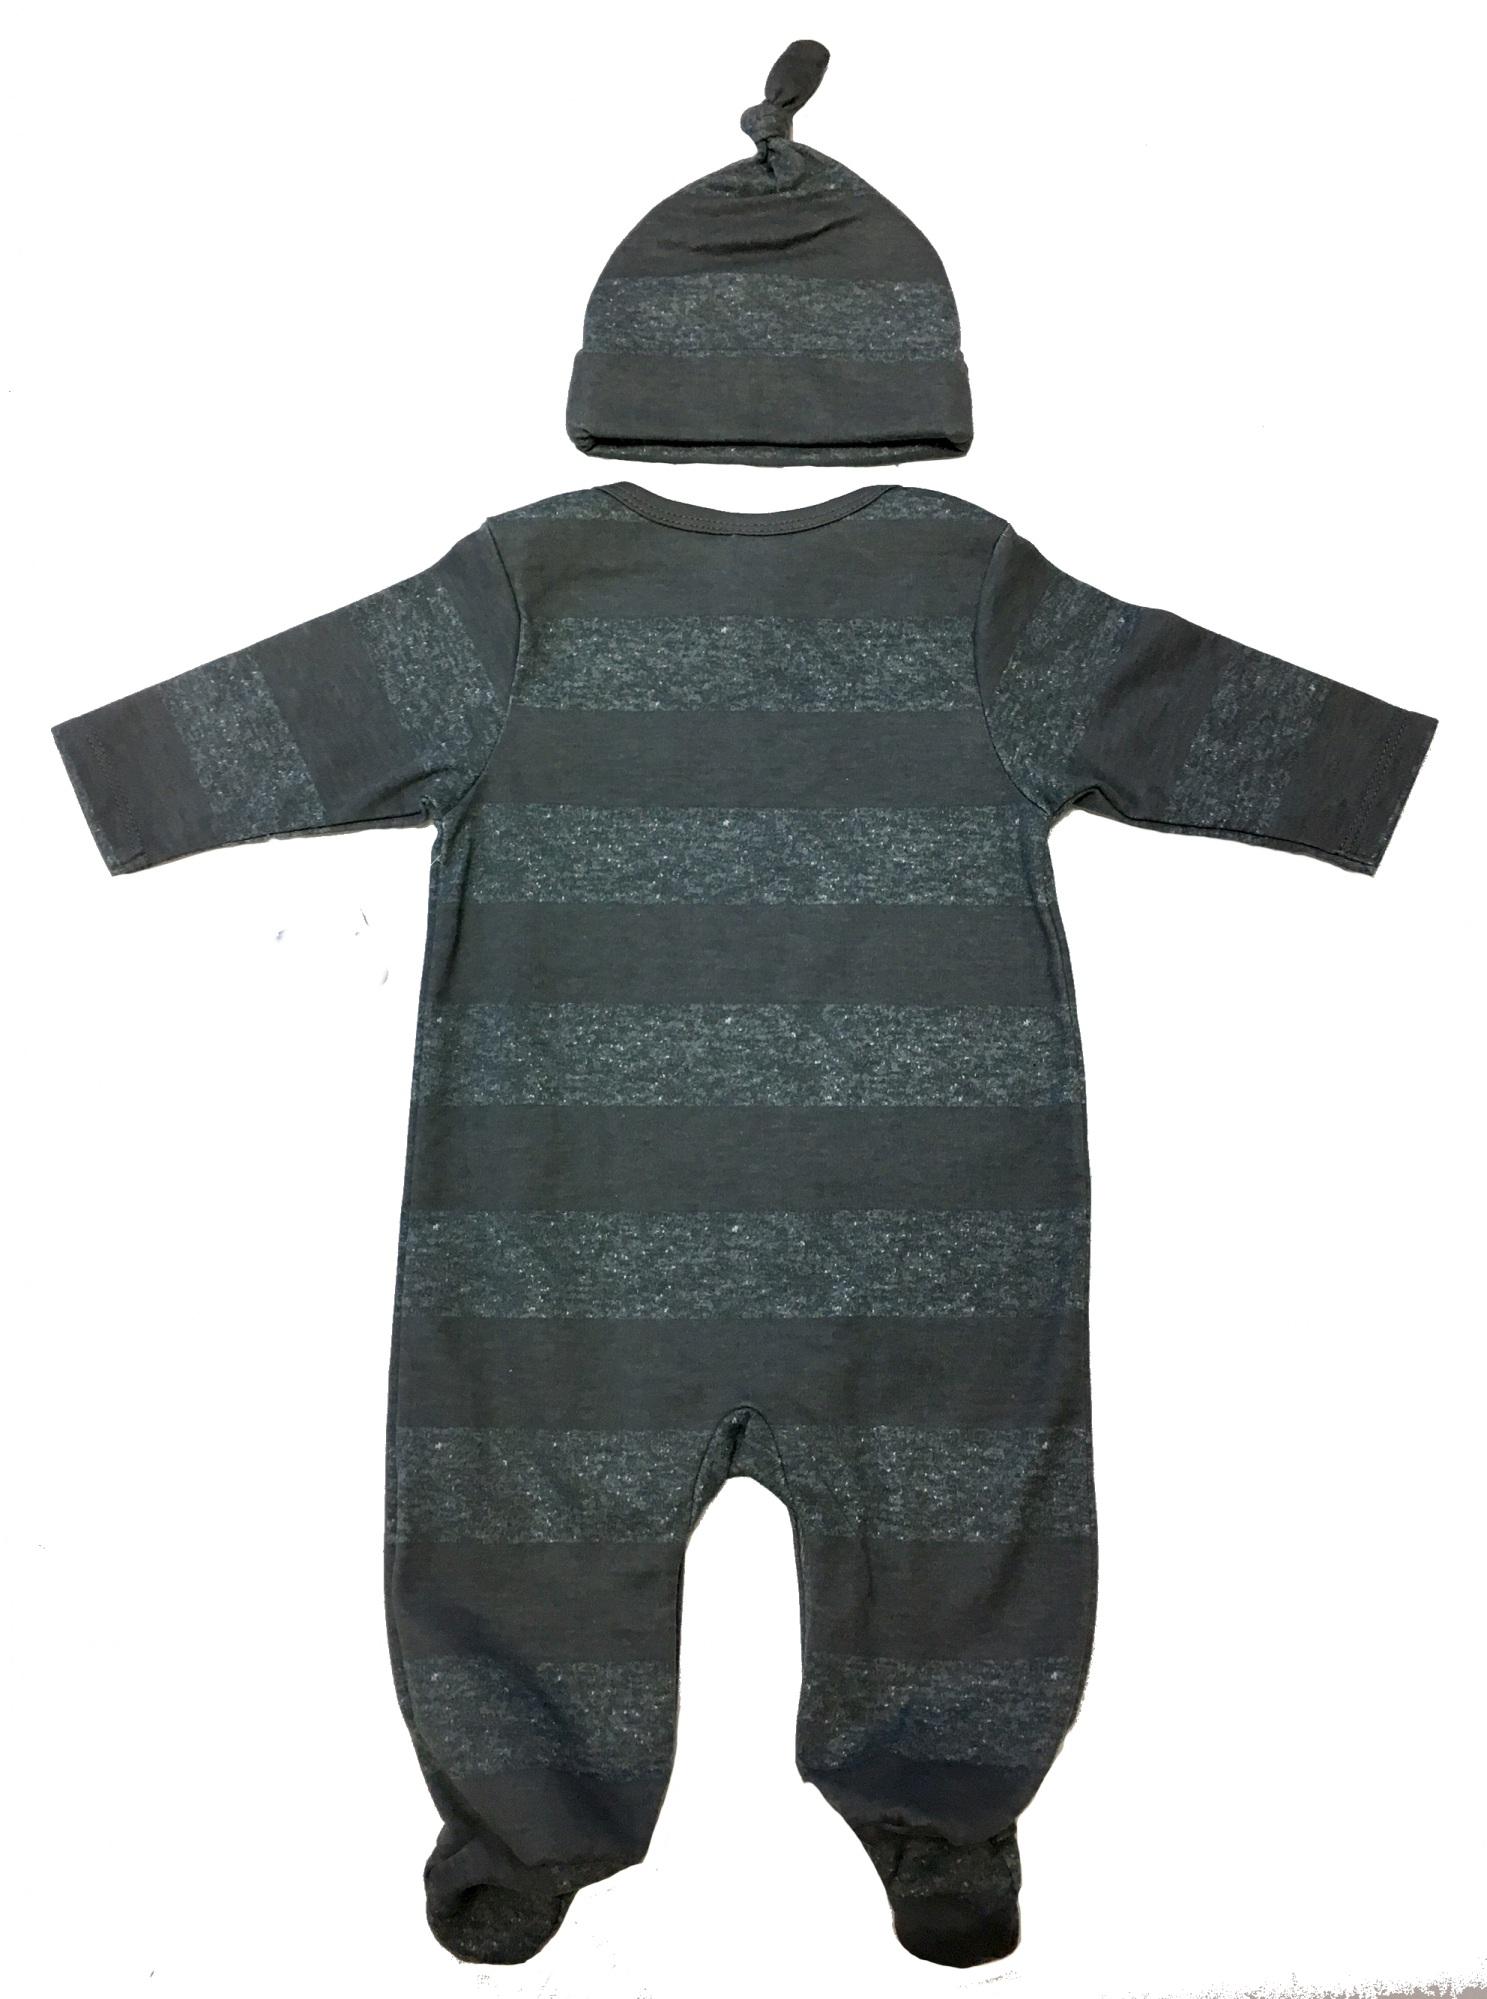 NFL-Steelers-baby-grey-striped-playsuit-and-cap-set-back.PNG